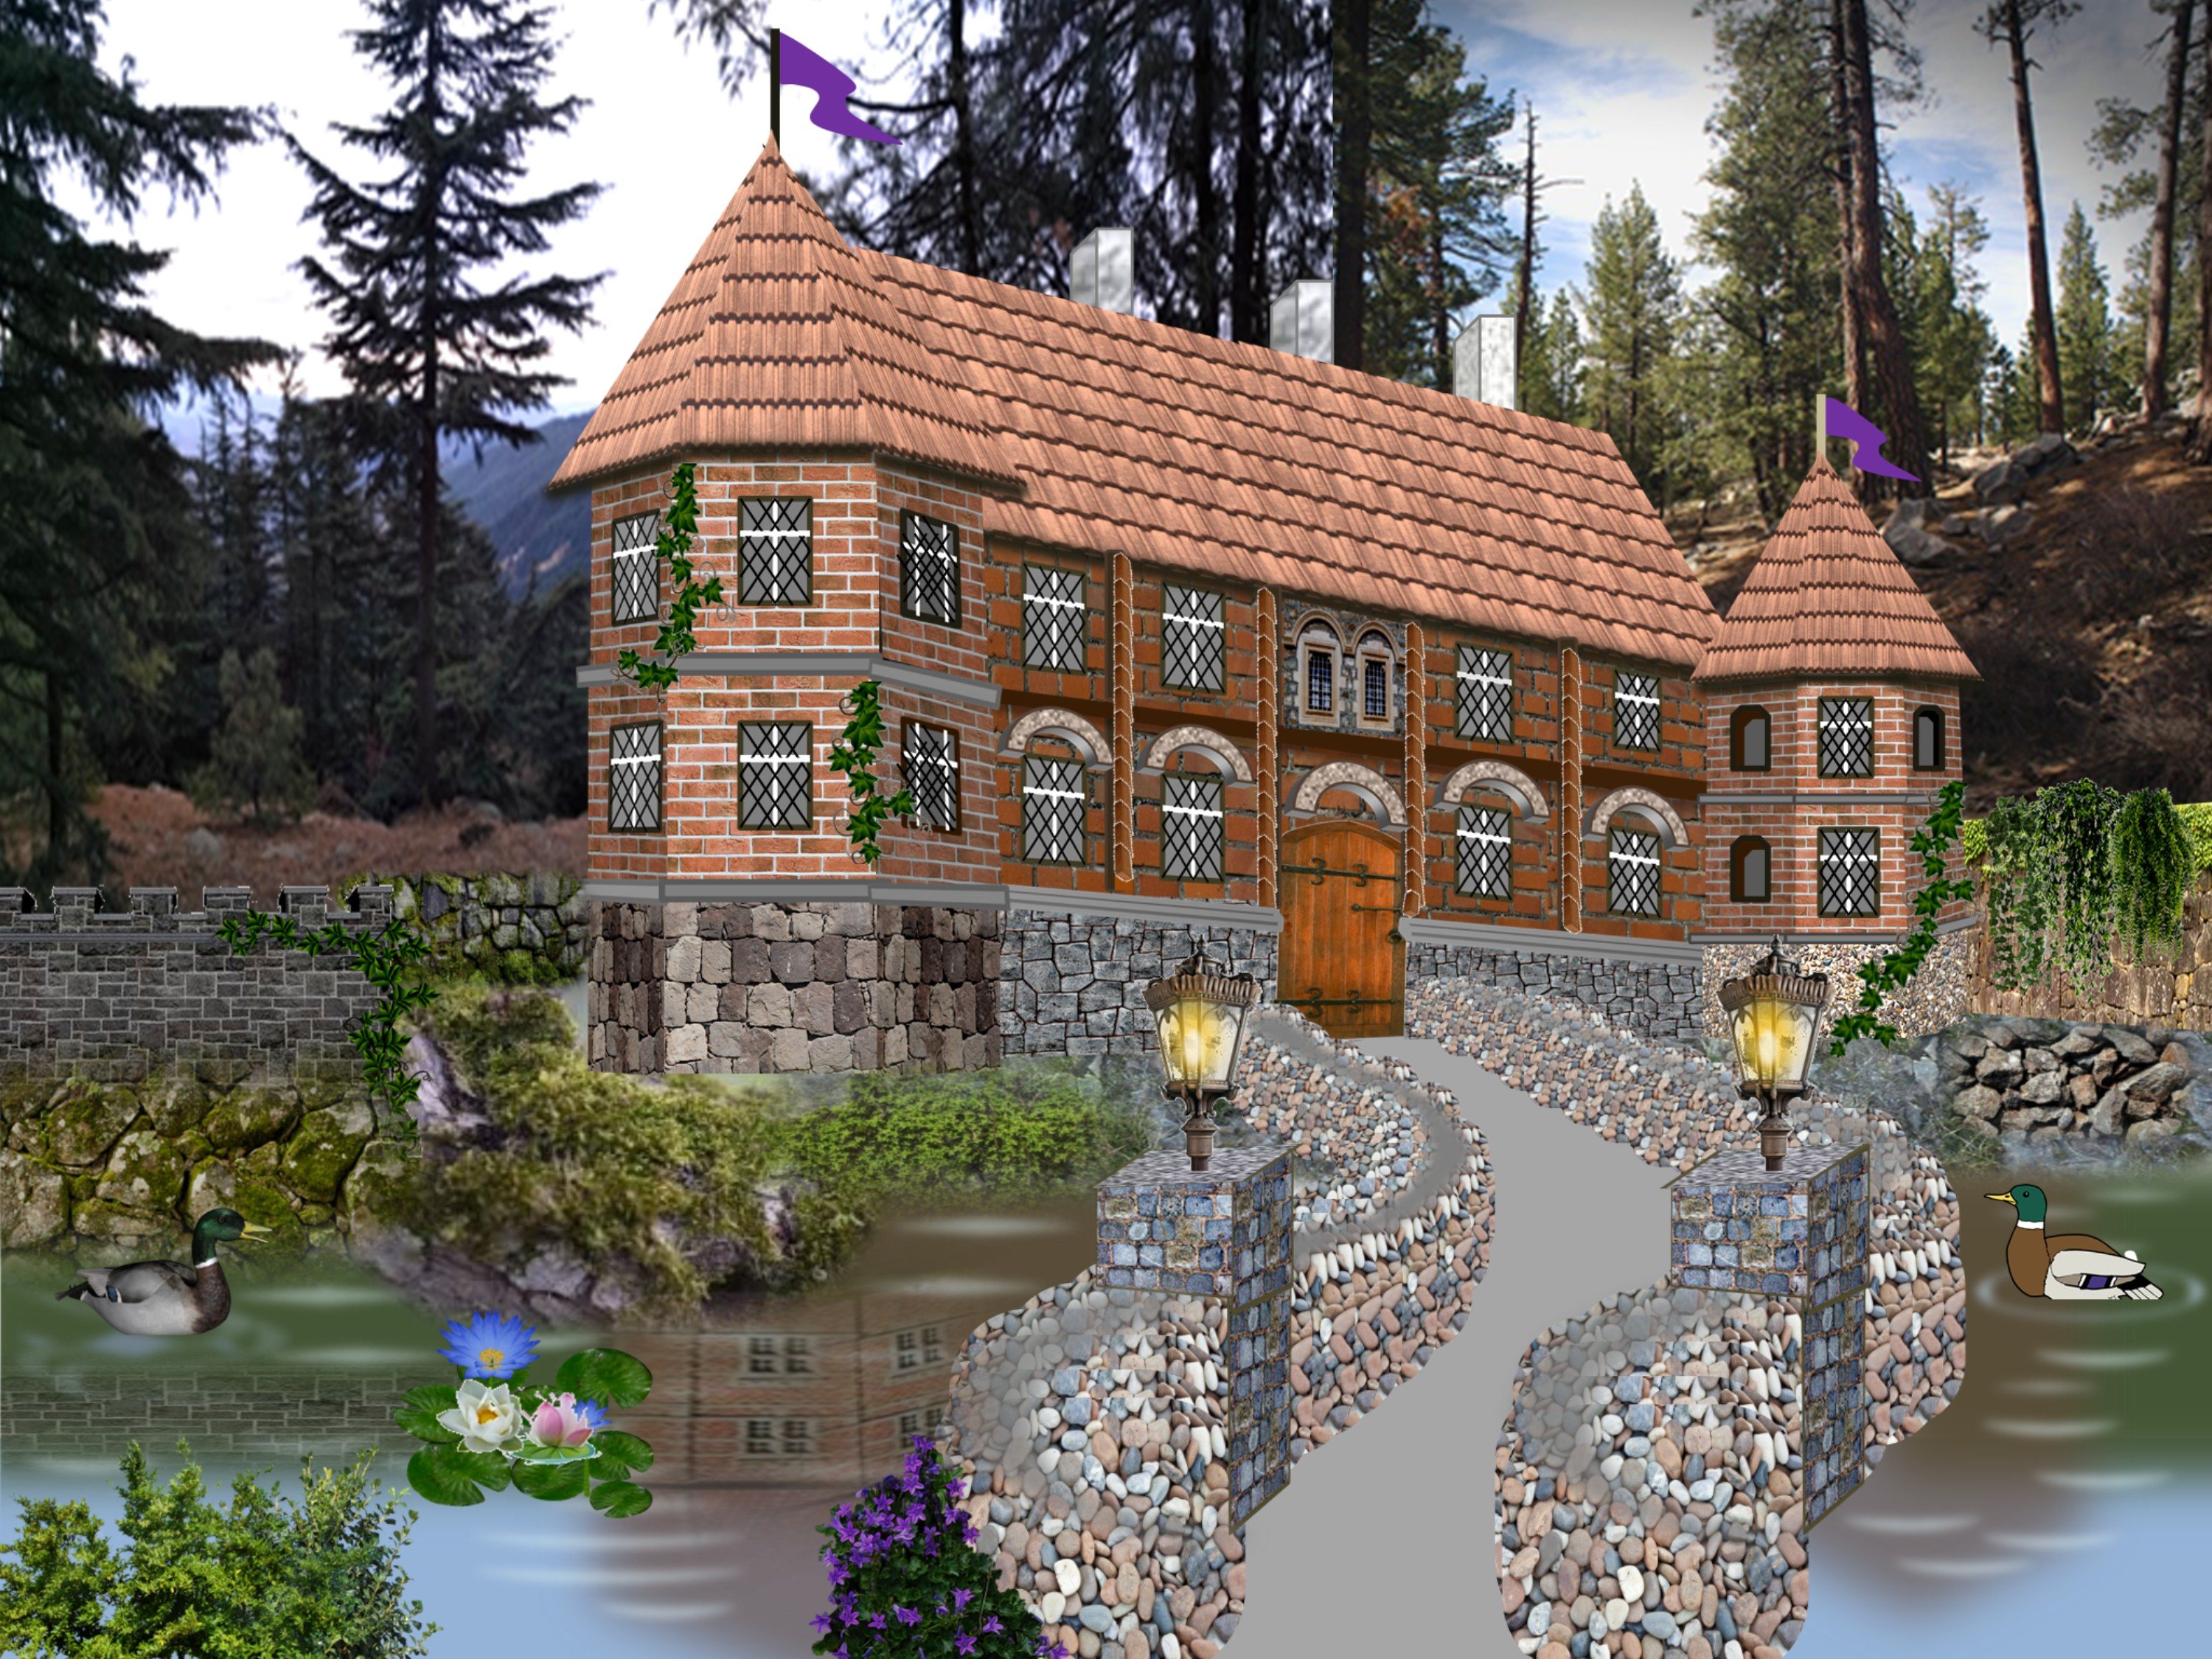 Animated Illustration | Lakeside Manor | Inspiration for Creative PowerPoint |